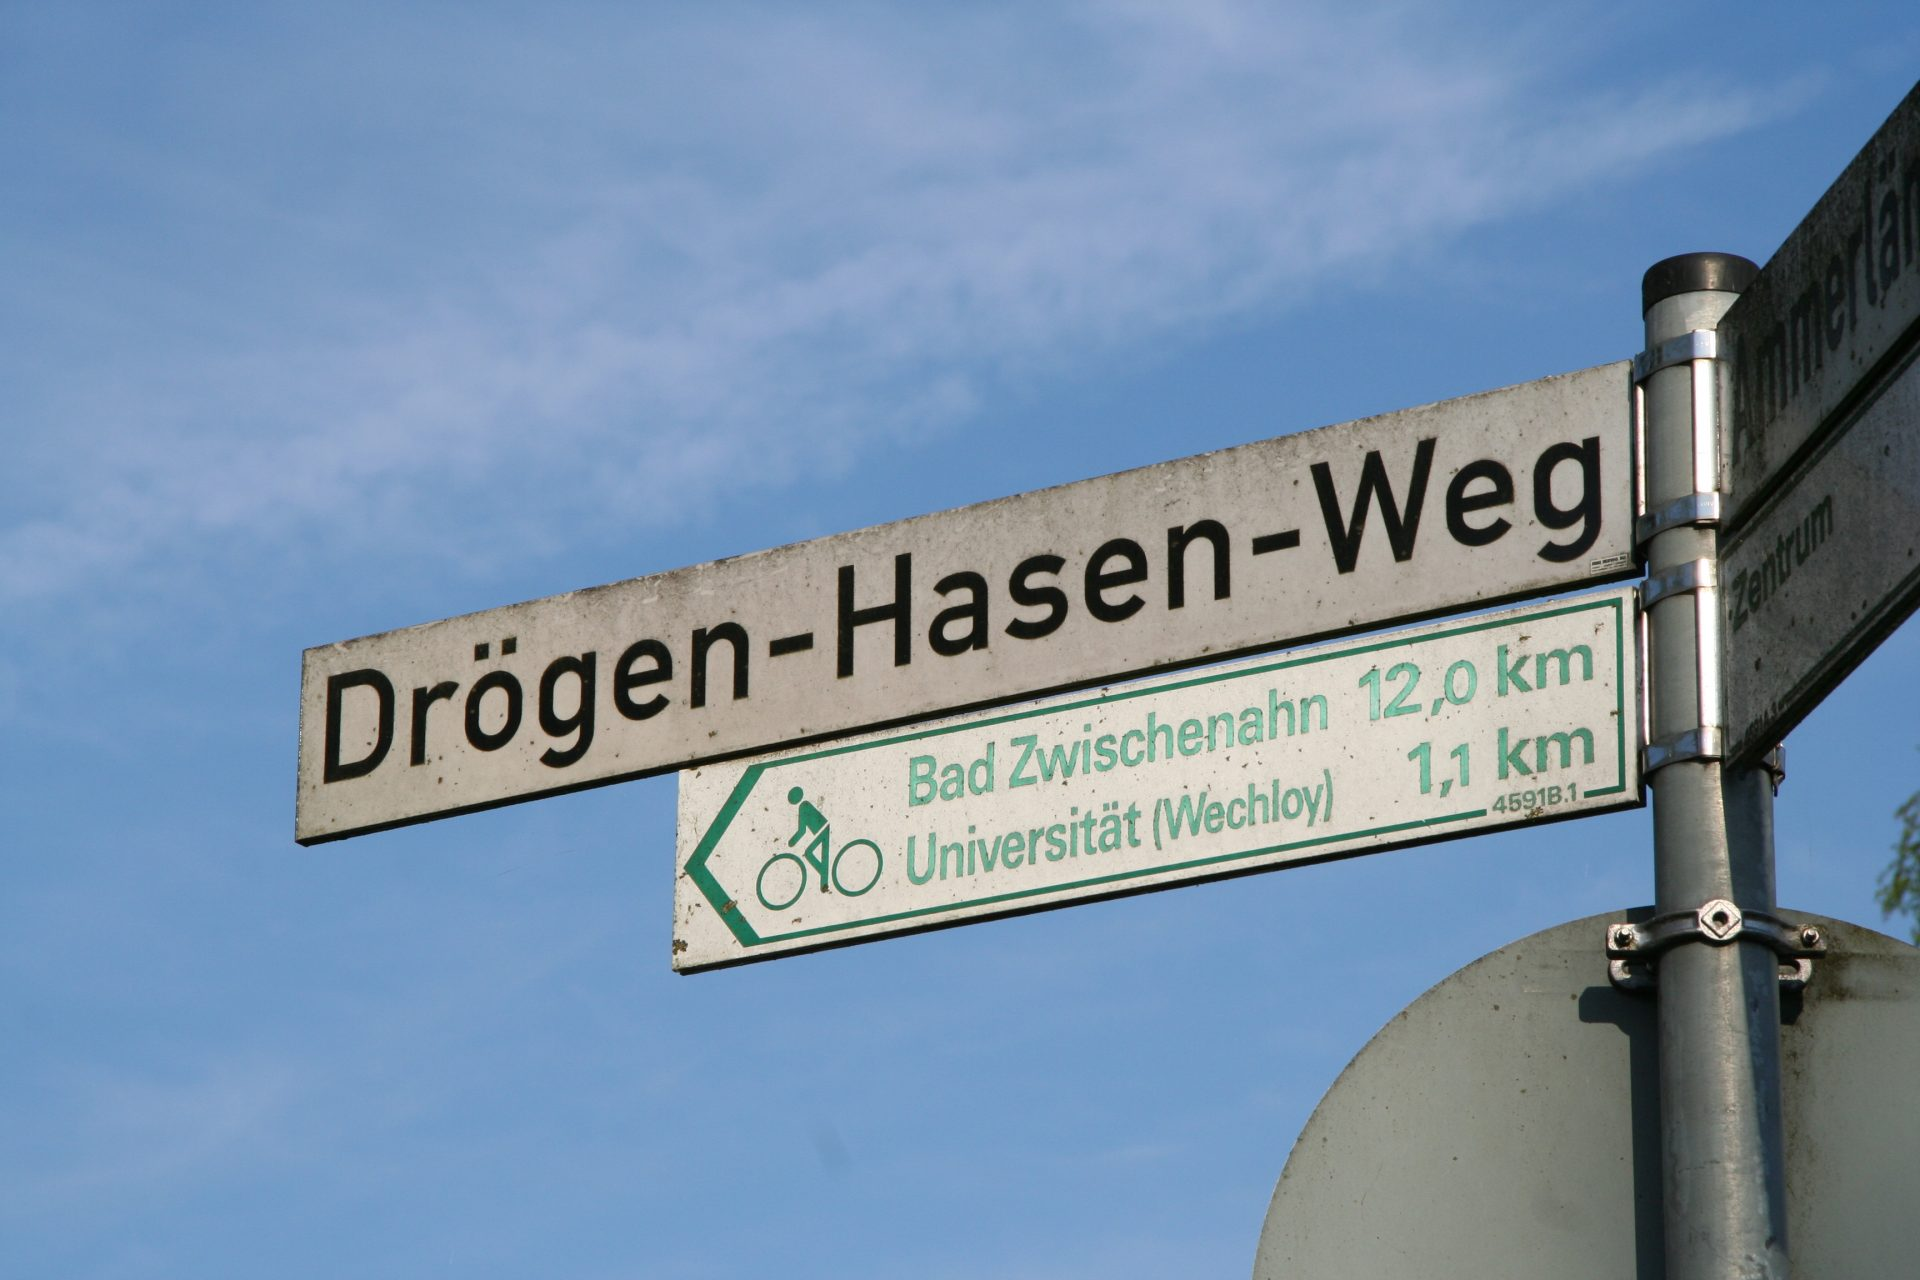 "My colleagues tell me that ""Drögen-Hasen-Weg"" means ""Dry Feet Way"" in Plattdüütsch, the local dialect of German still spoken in this area. In earlier times, this road was a way for the locals to get around without having to cross any waterways. Photo by Heidi Meudt."